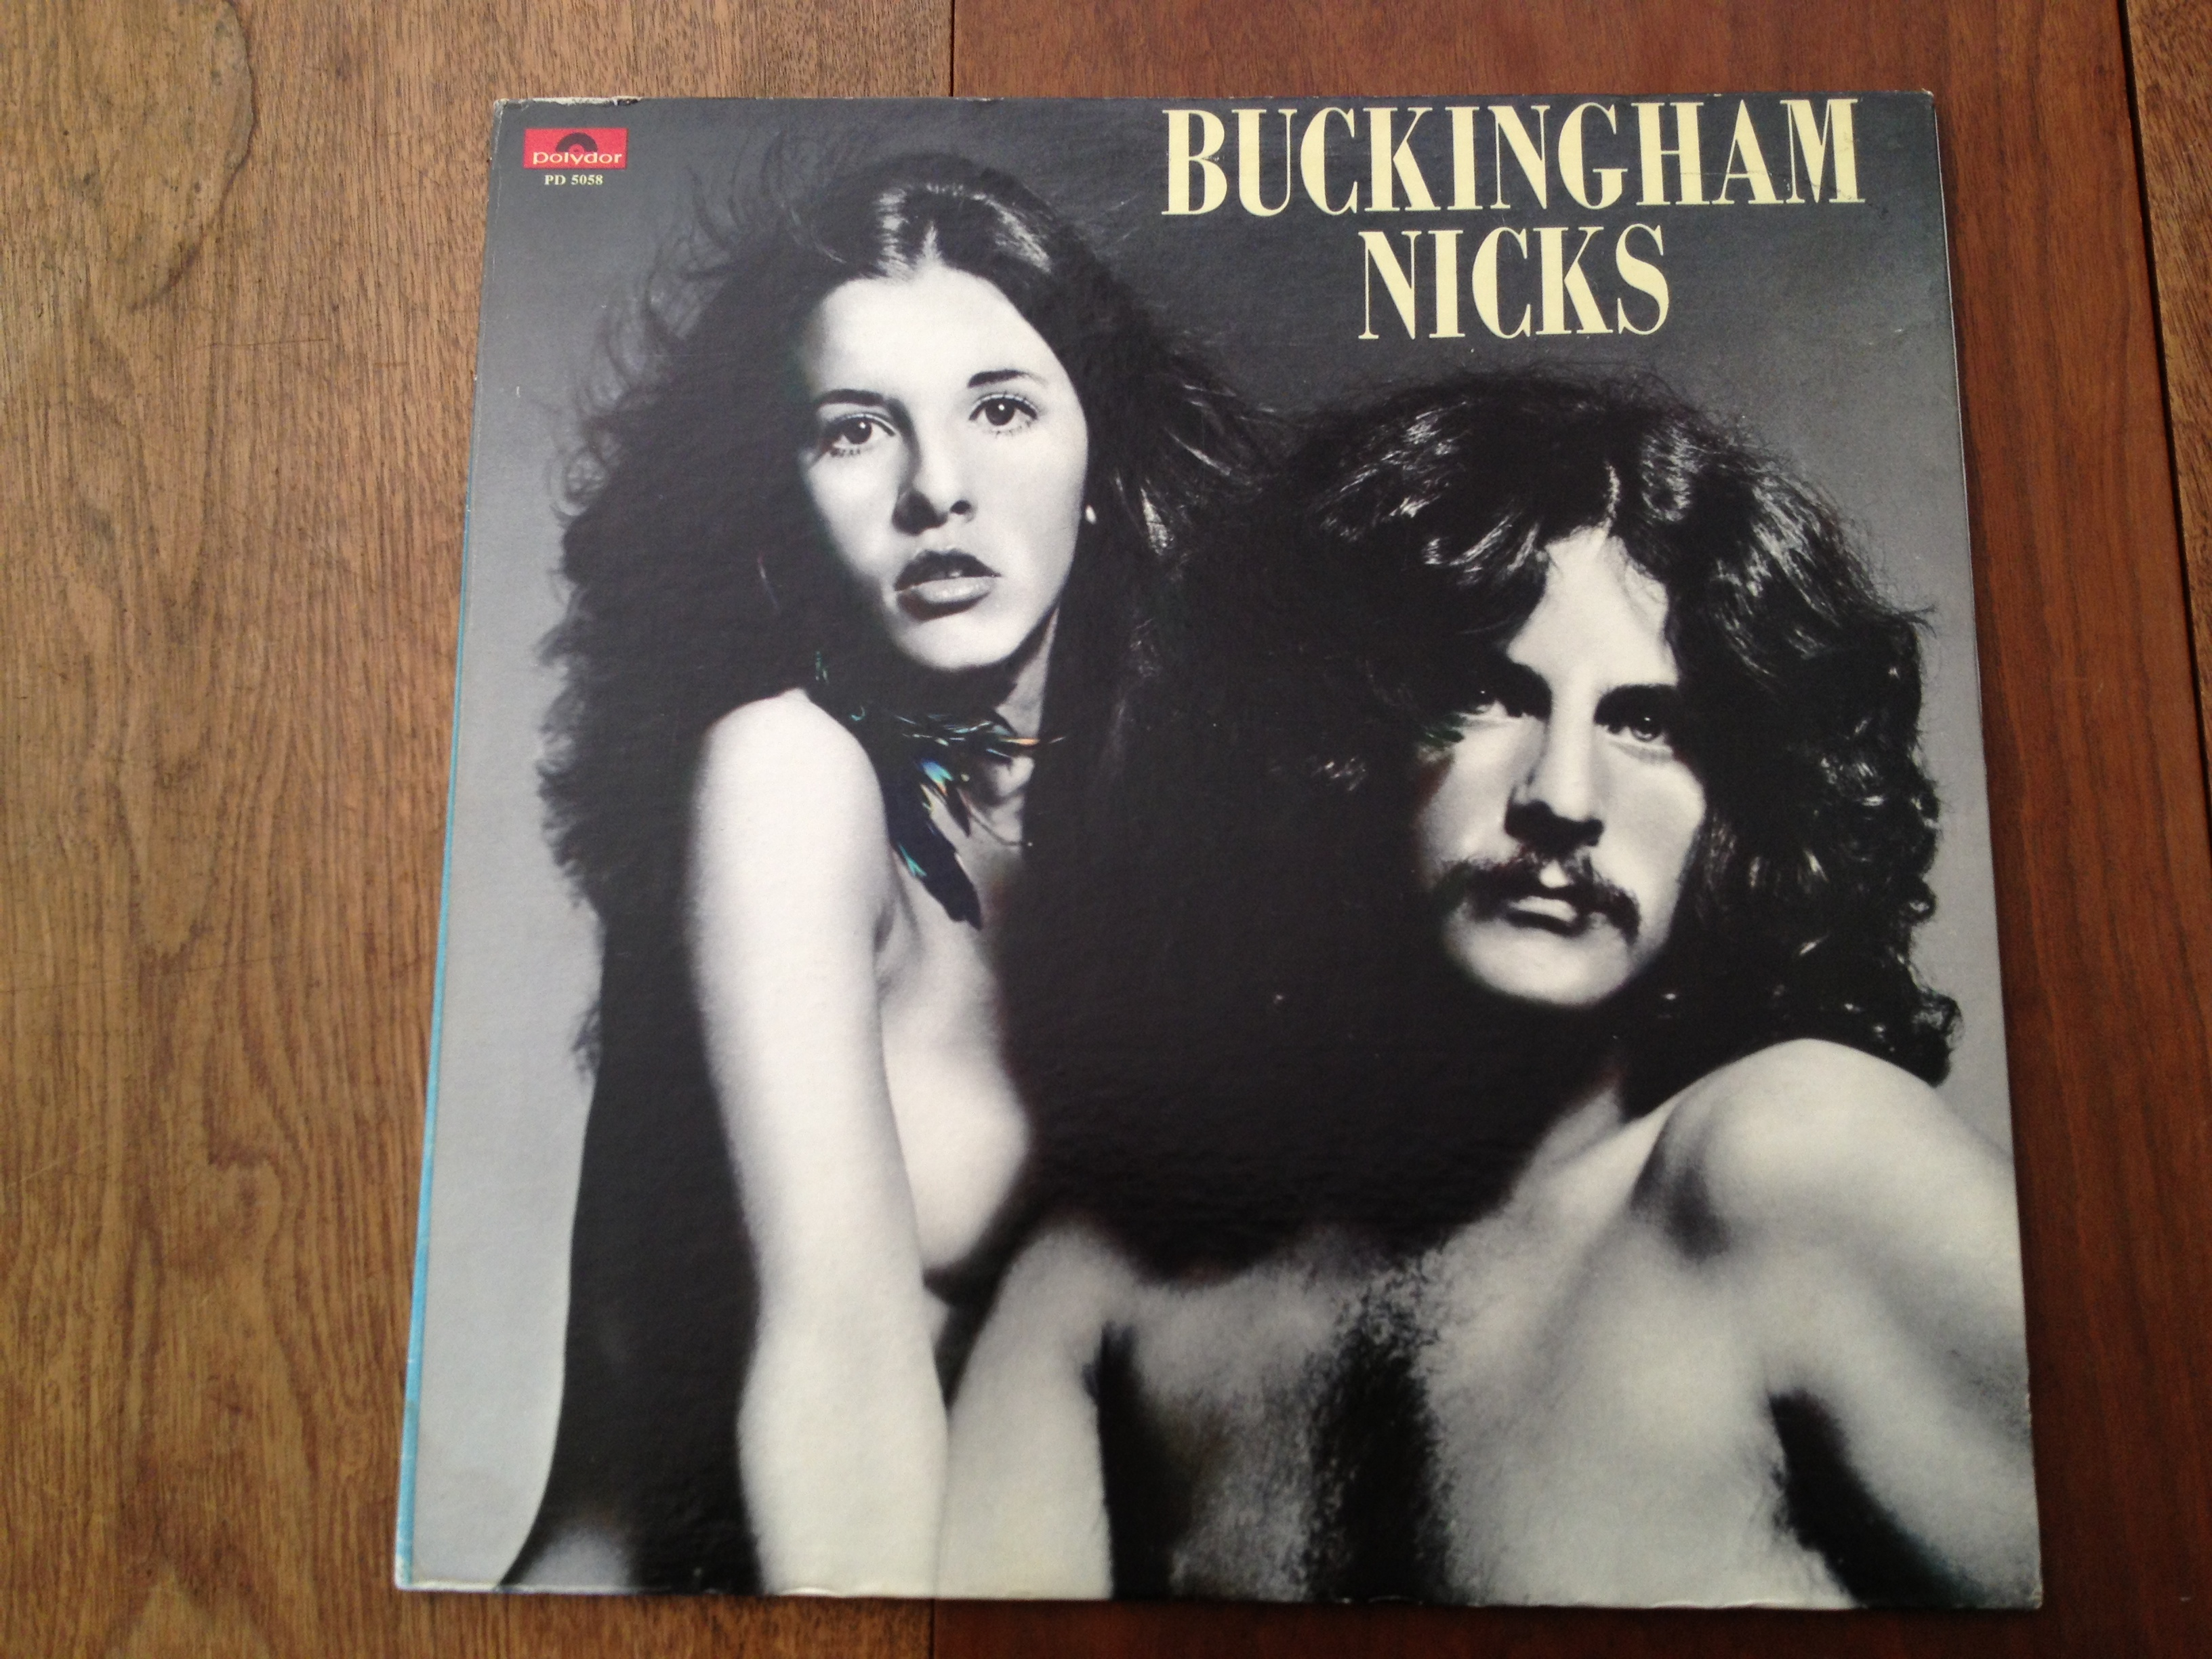 Album cover for Buckingham Nicks